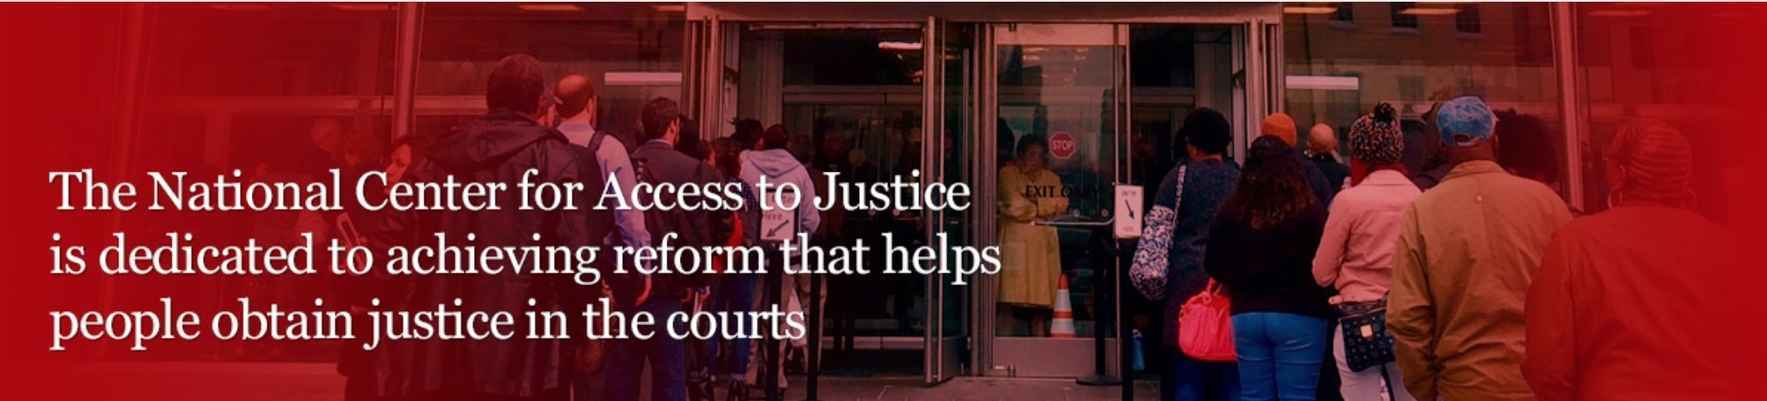 National Center for Access To Justice Inc image